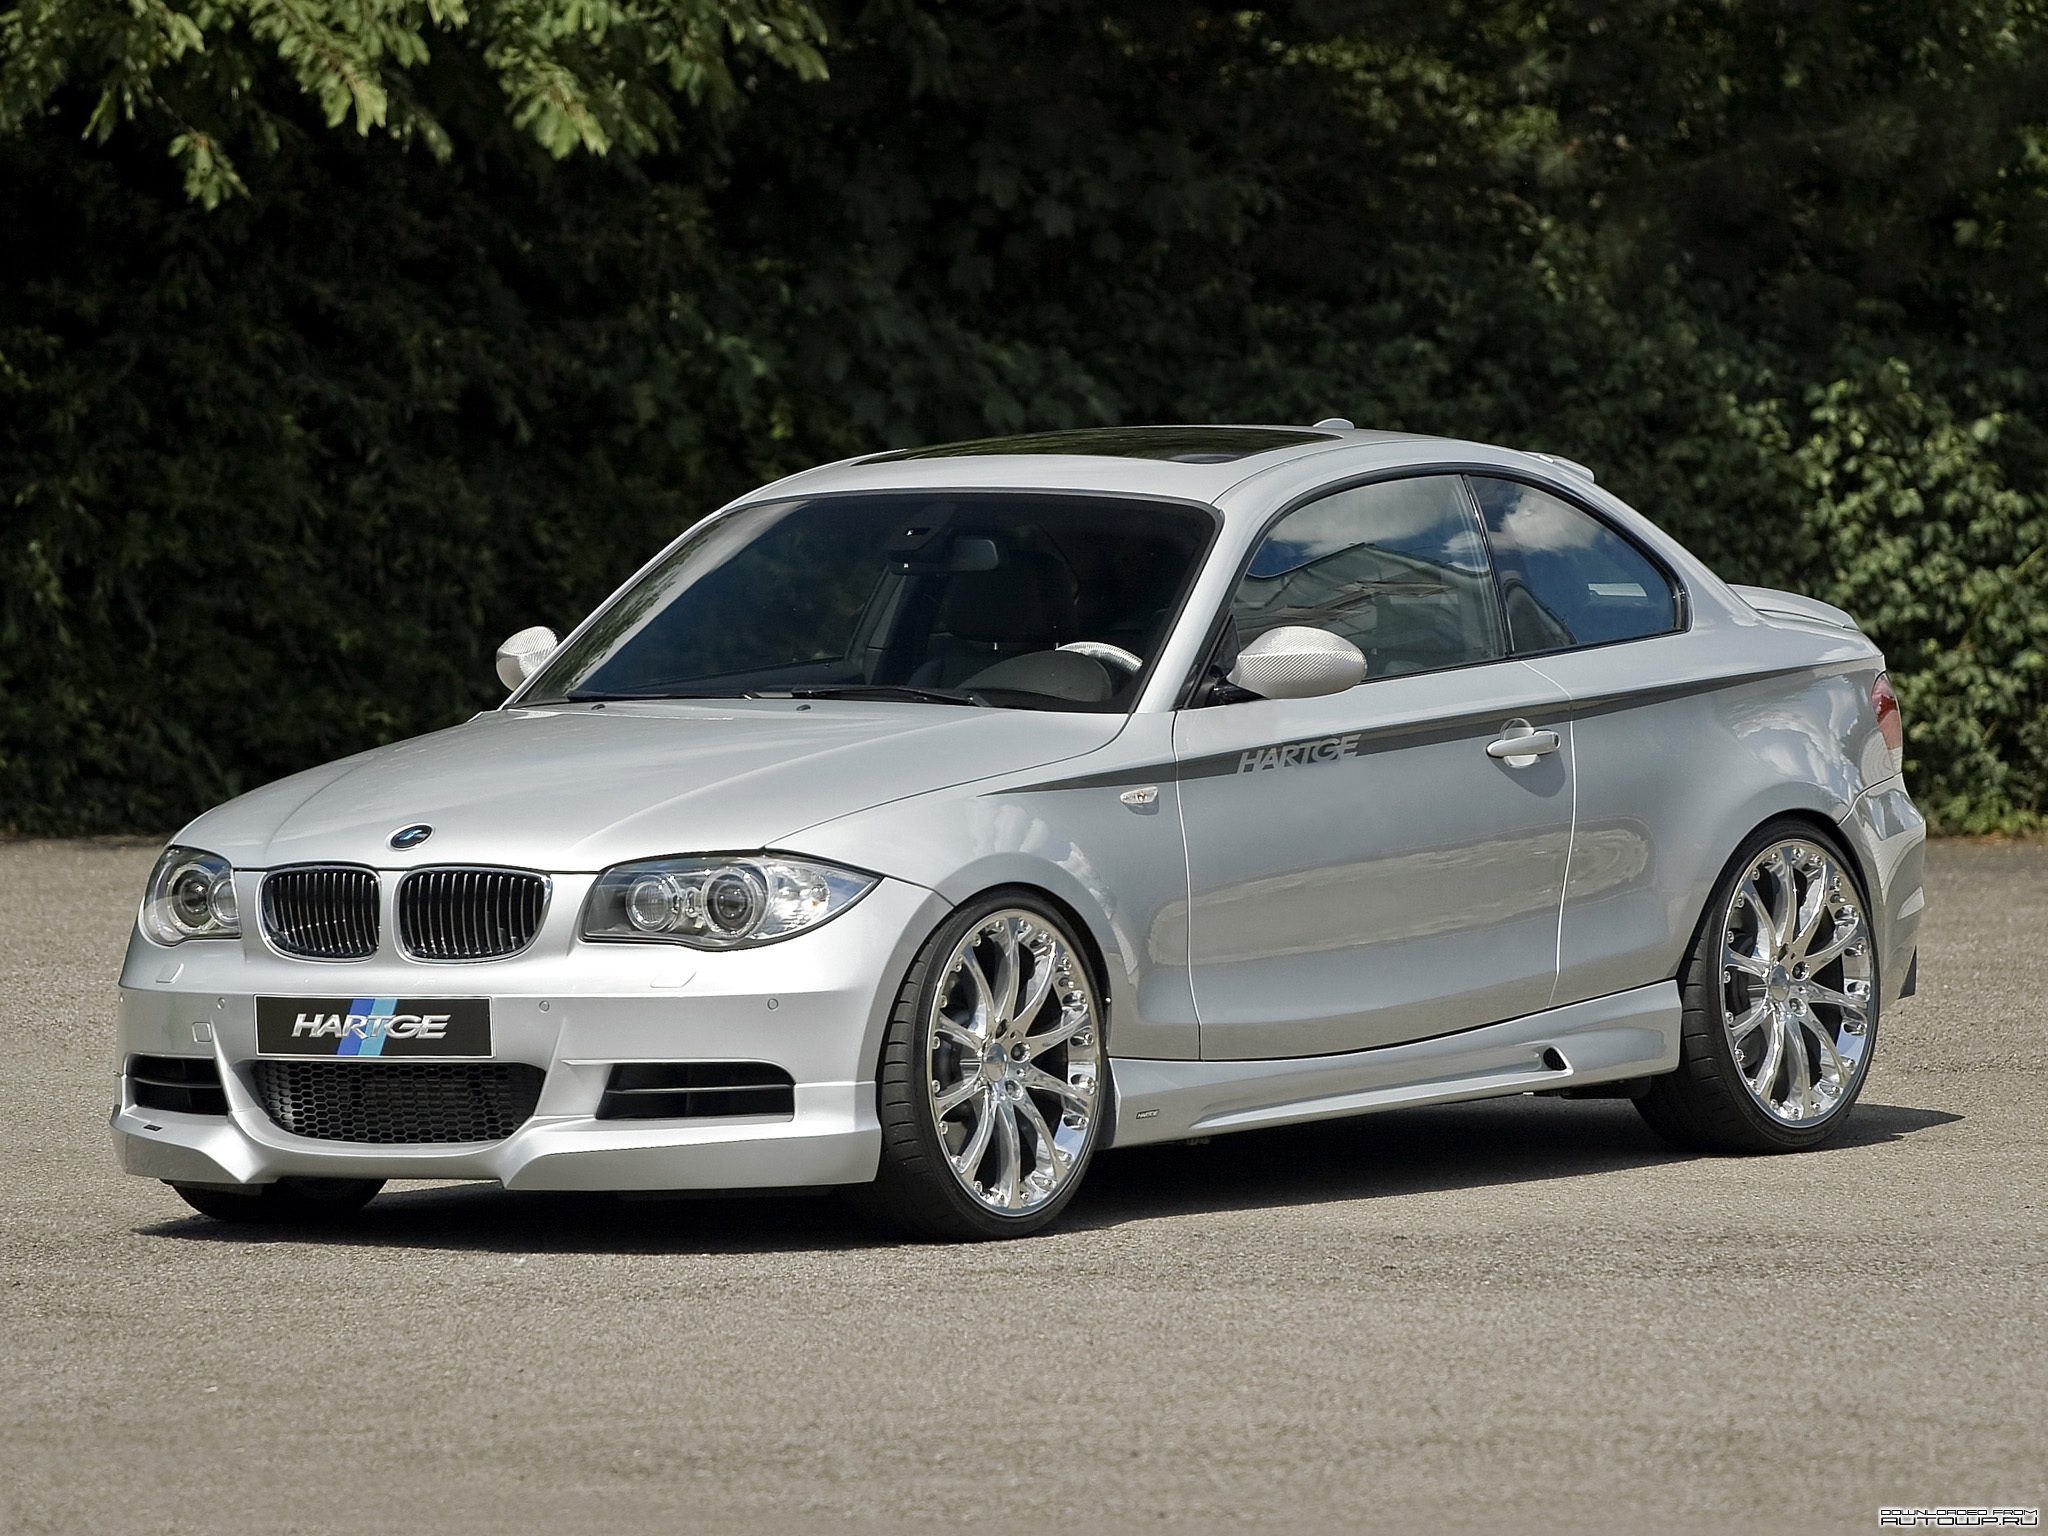 BMW 135i Pictures Wallpaper New BMW pic 2048x1536